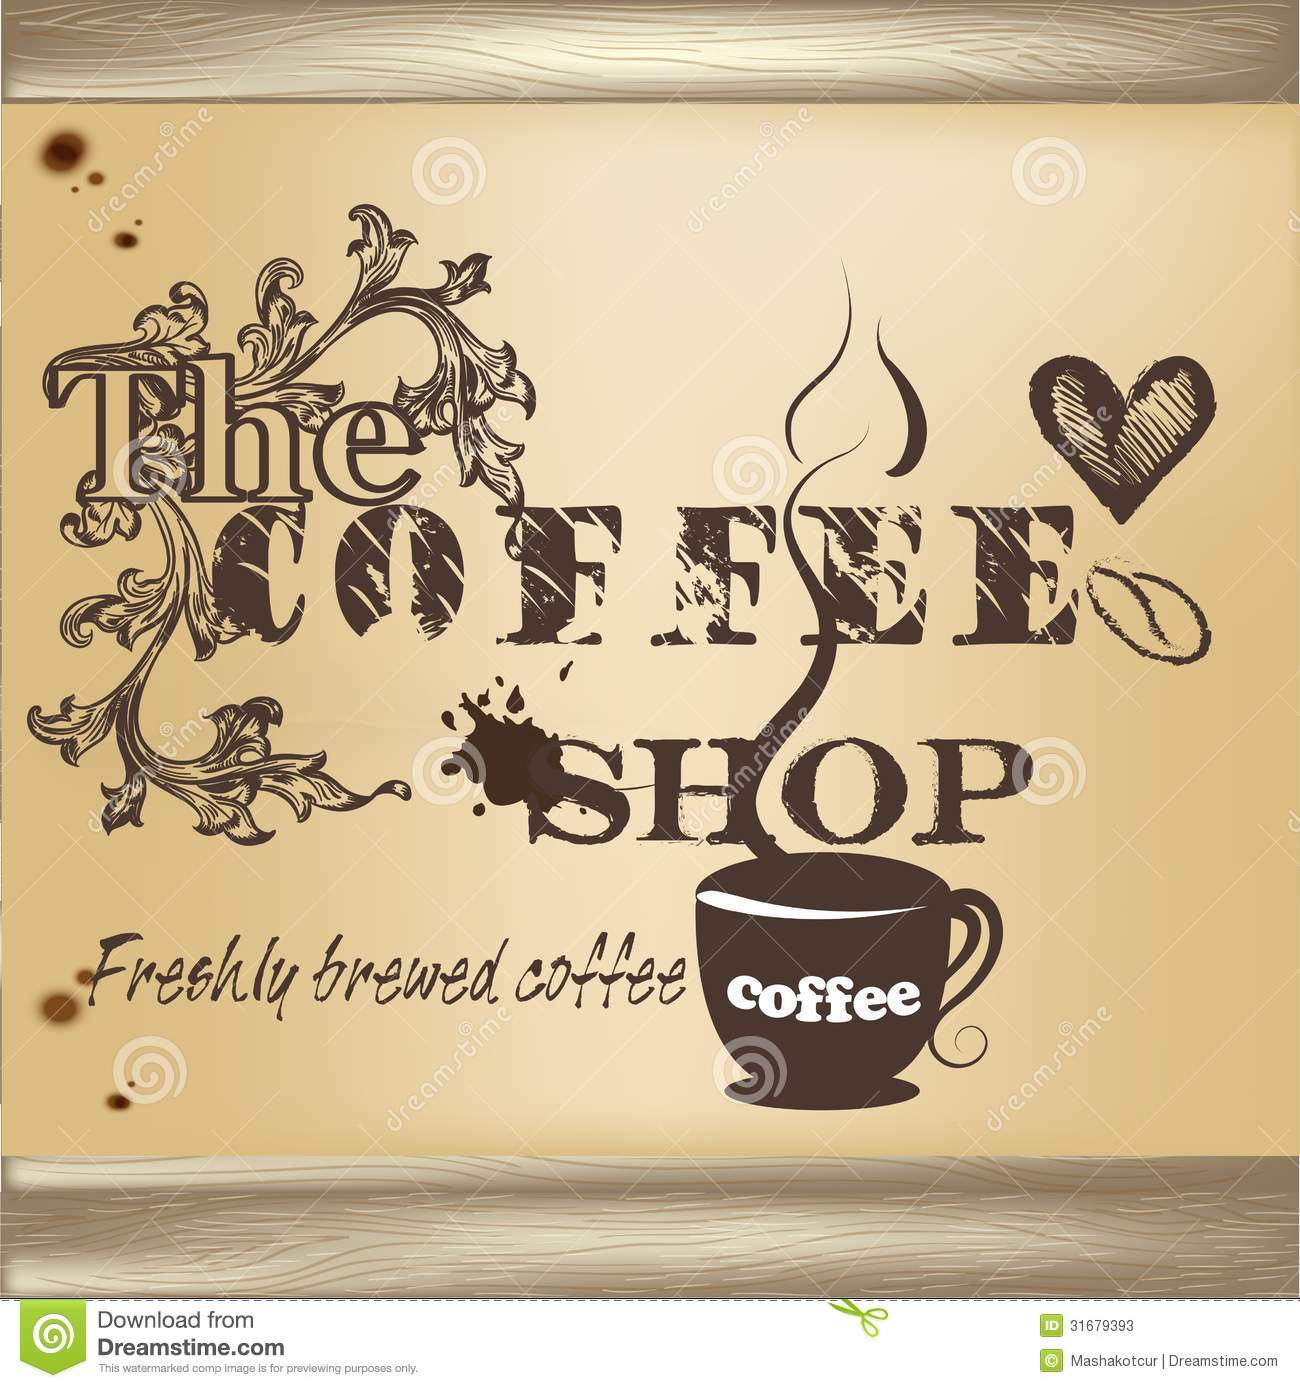 Design Of Coffee Shop Poster Stock Vector - Illustration of artistic ...